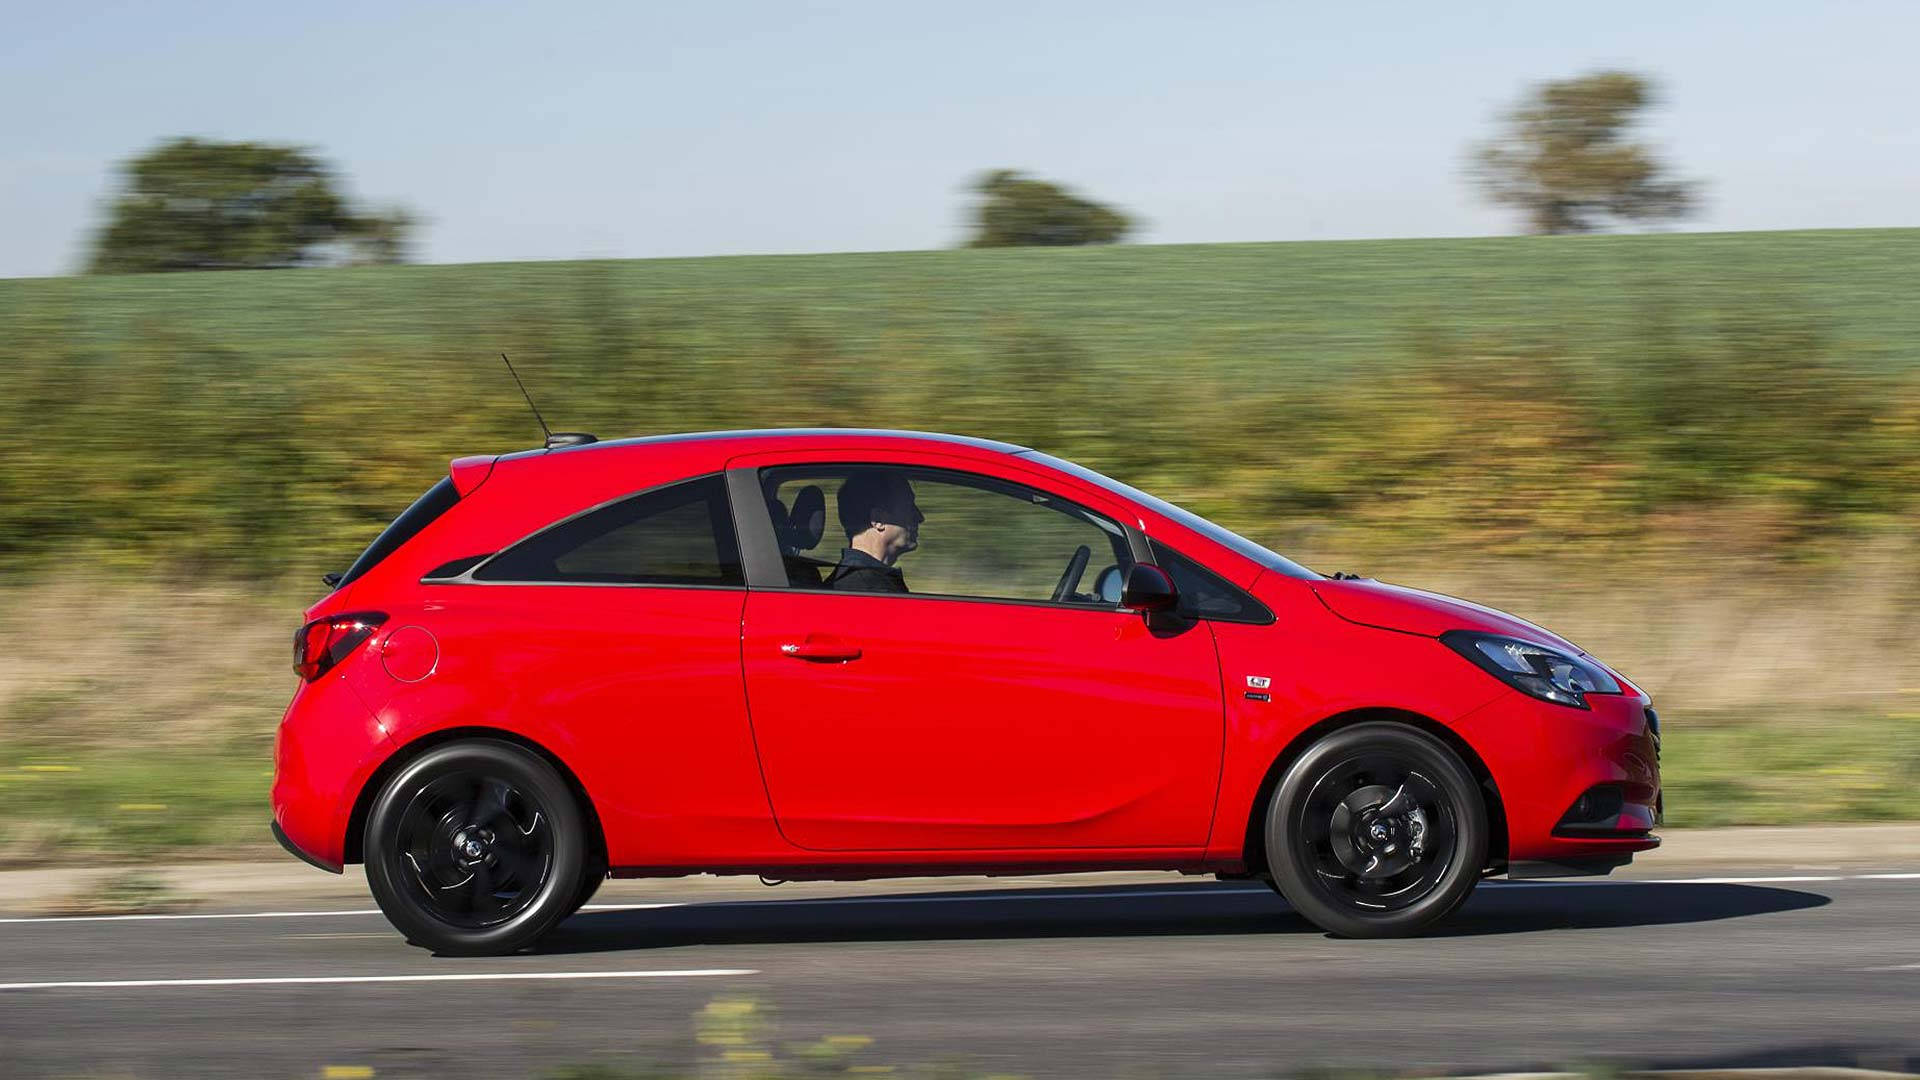 vauxhall corsa griffin edition 1 4 75 review motoring. Black Bedroom Furniture Sets. Home Design Ideas